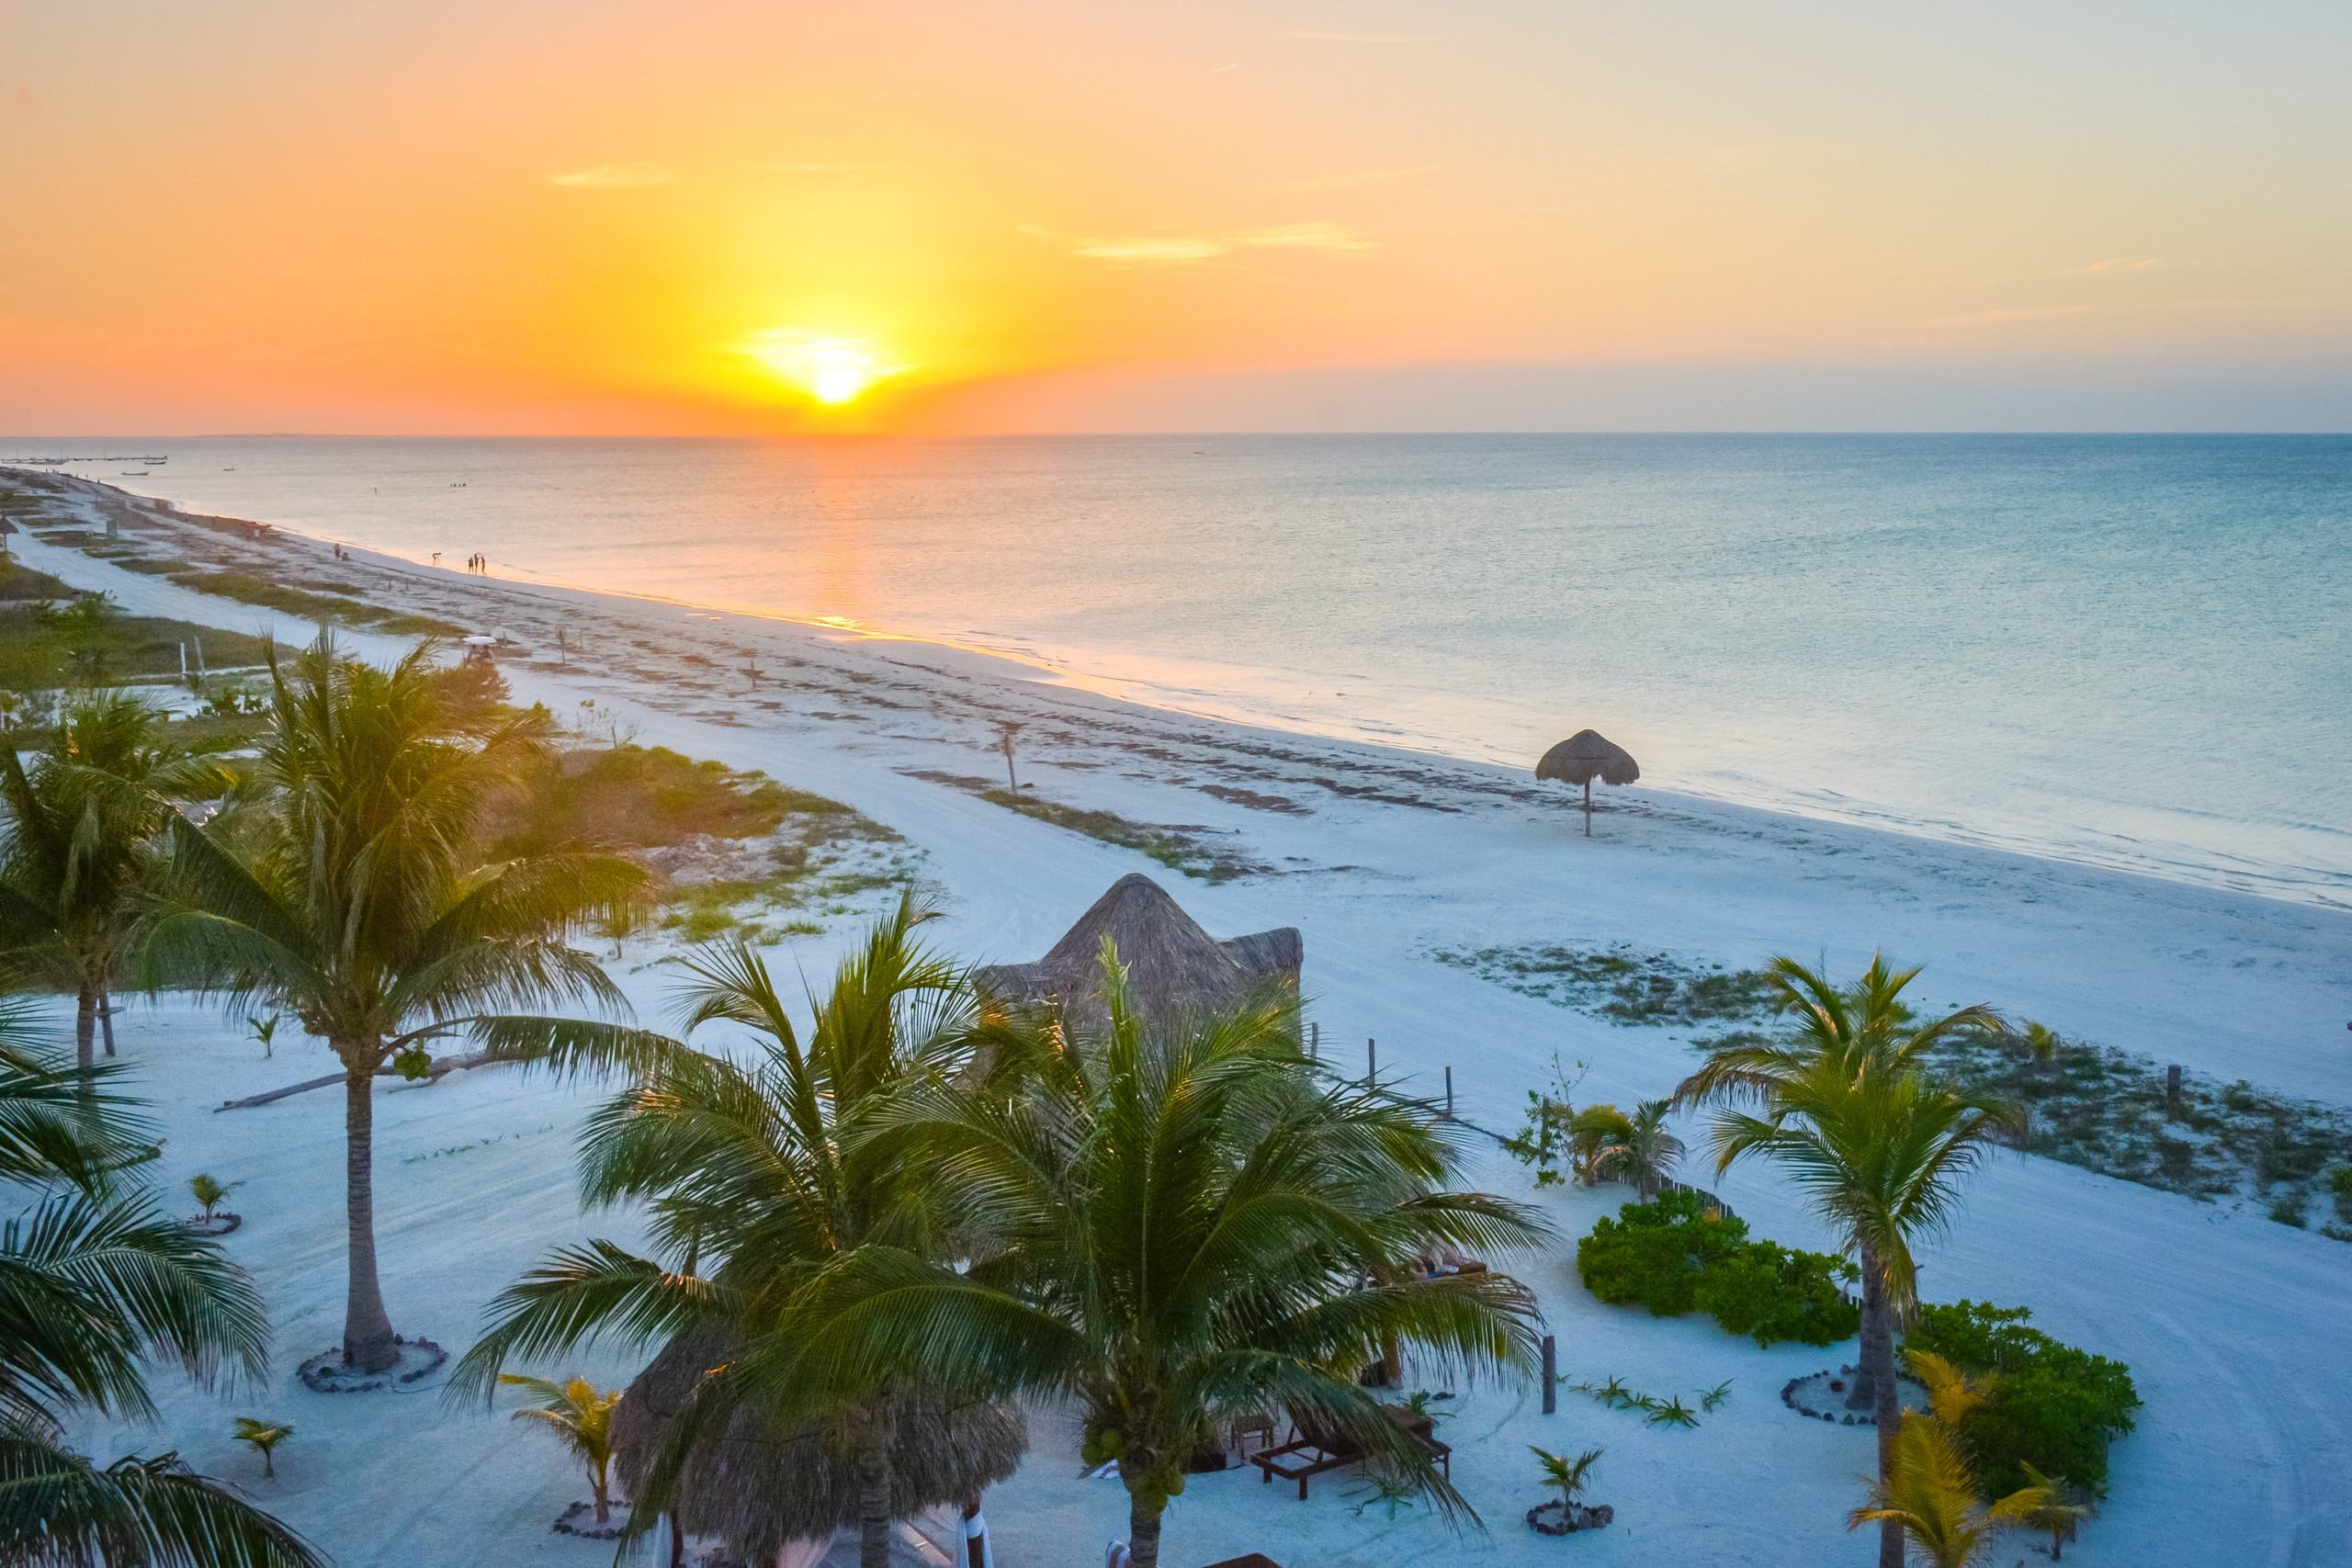 When is it best to travel to the Riviera Maya?